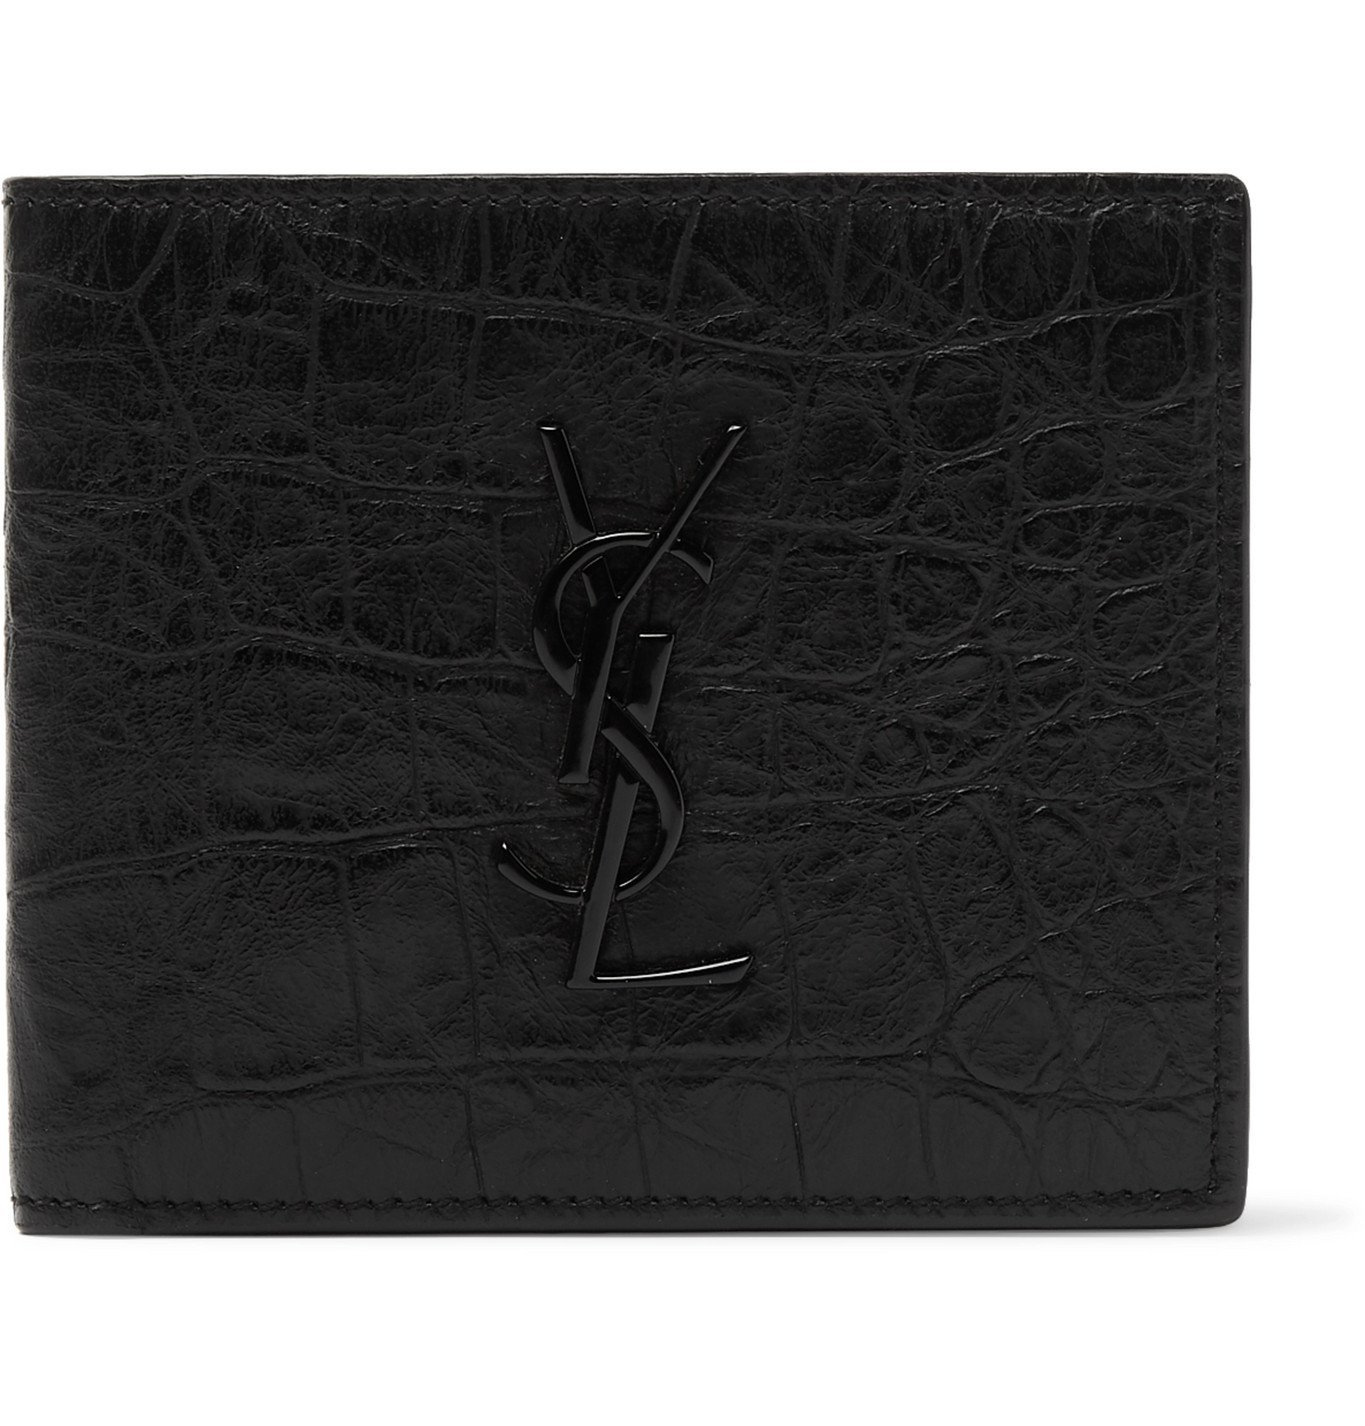 Photo: SAINT LAURENT - Logo-Appliquéd Croc-Effect Leather Billfold Wallet - Black